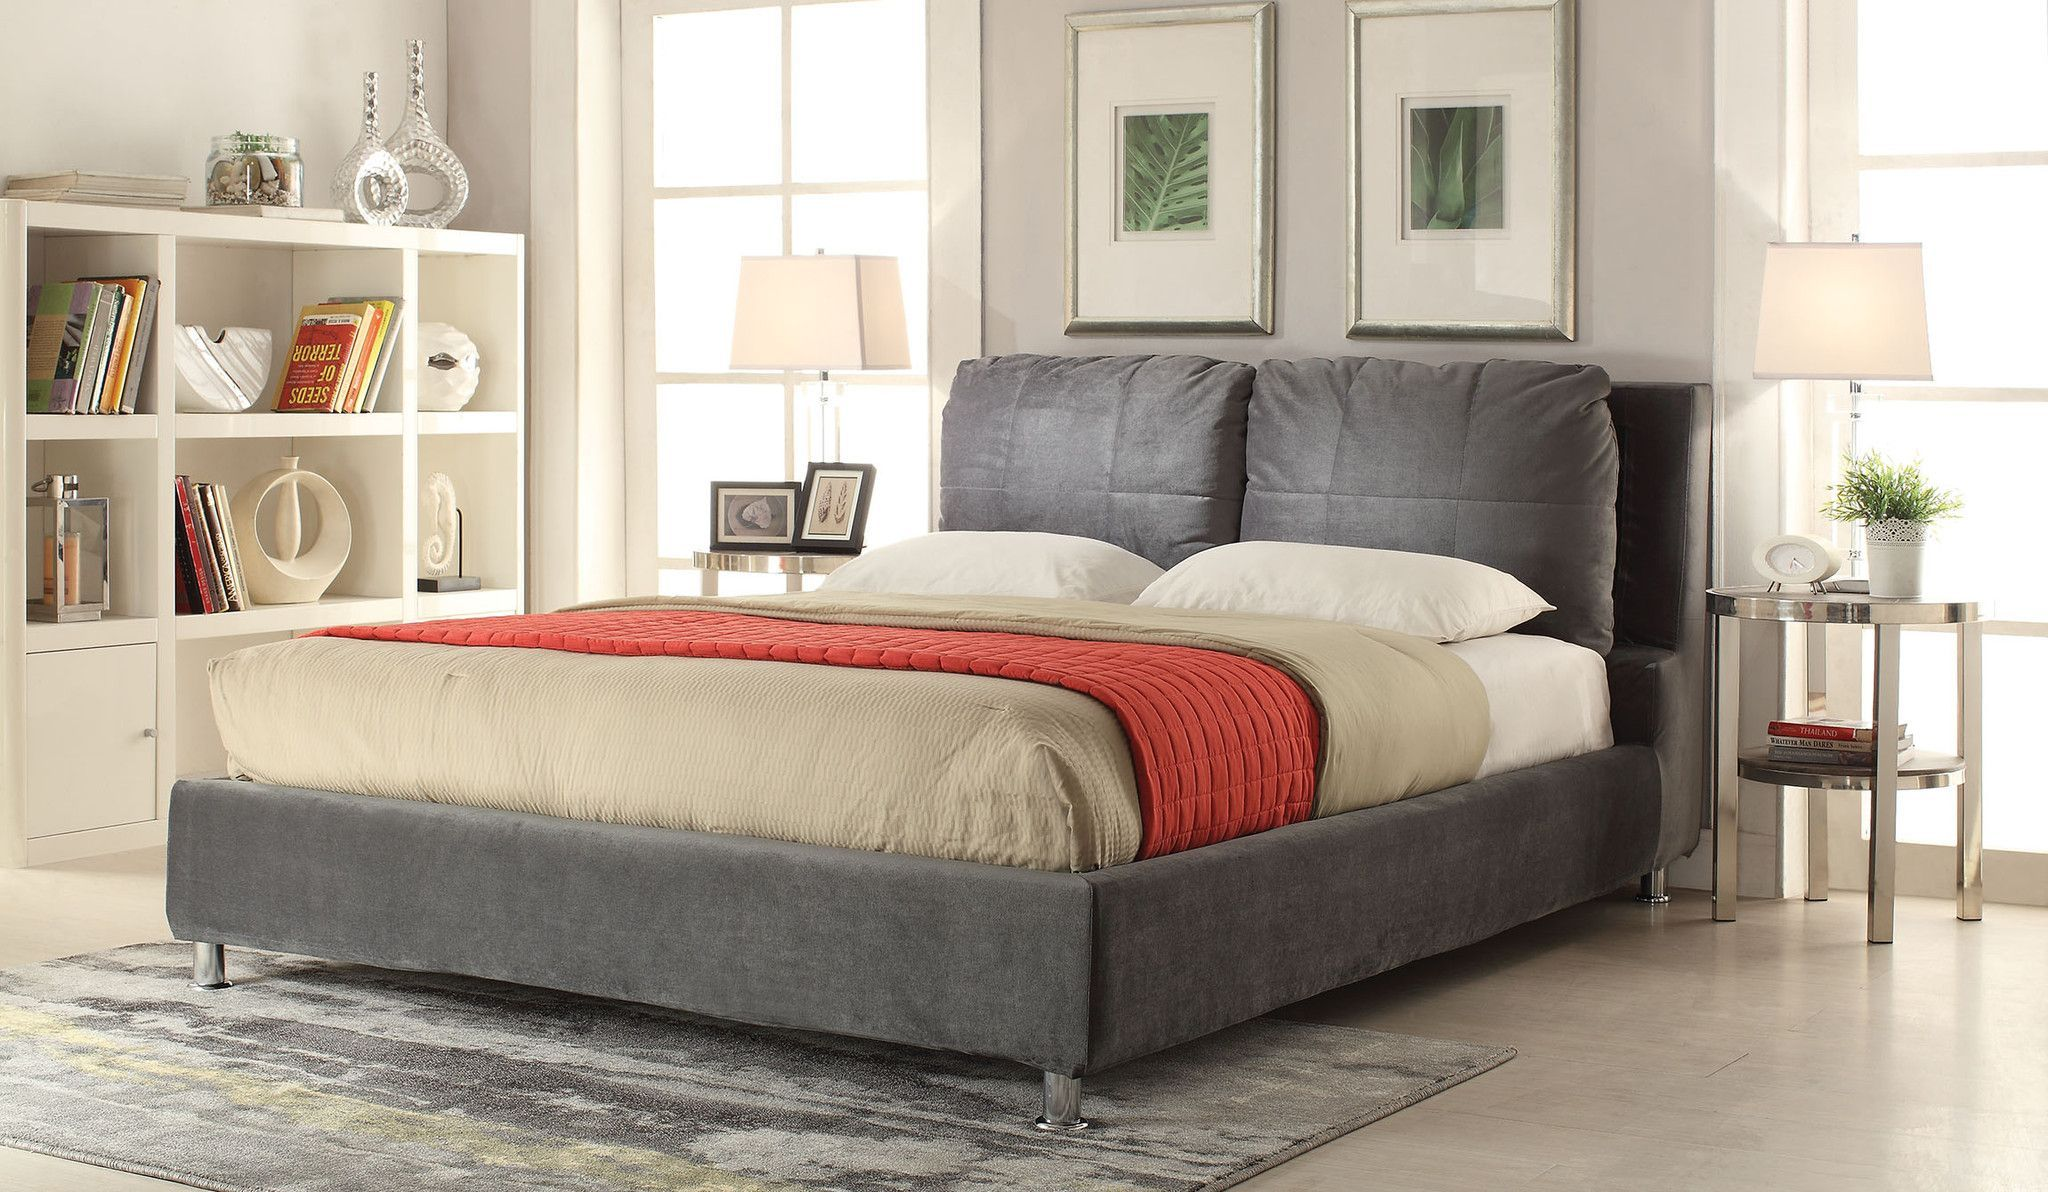 Bywilde Dark Olive Gray Fabric Queen Bed 25260q 418 Features No